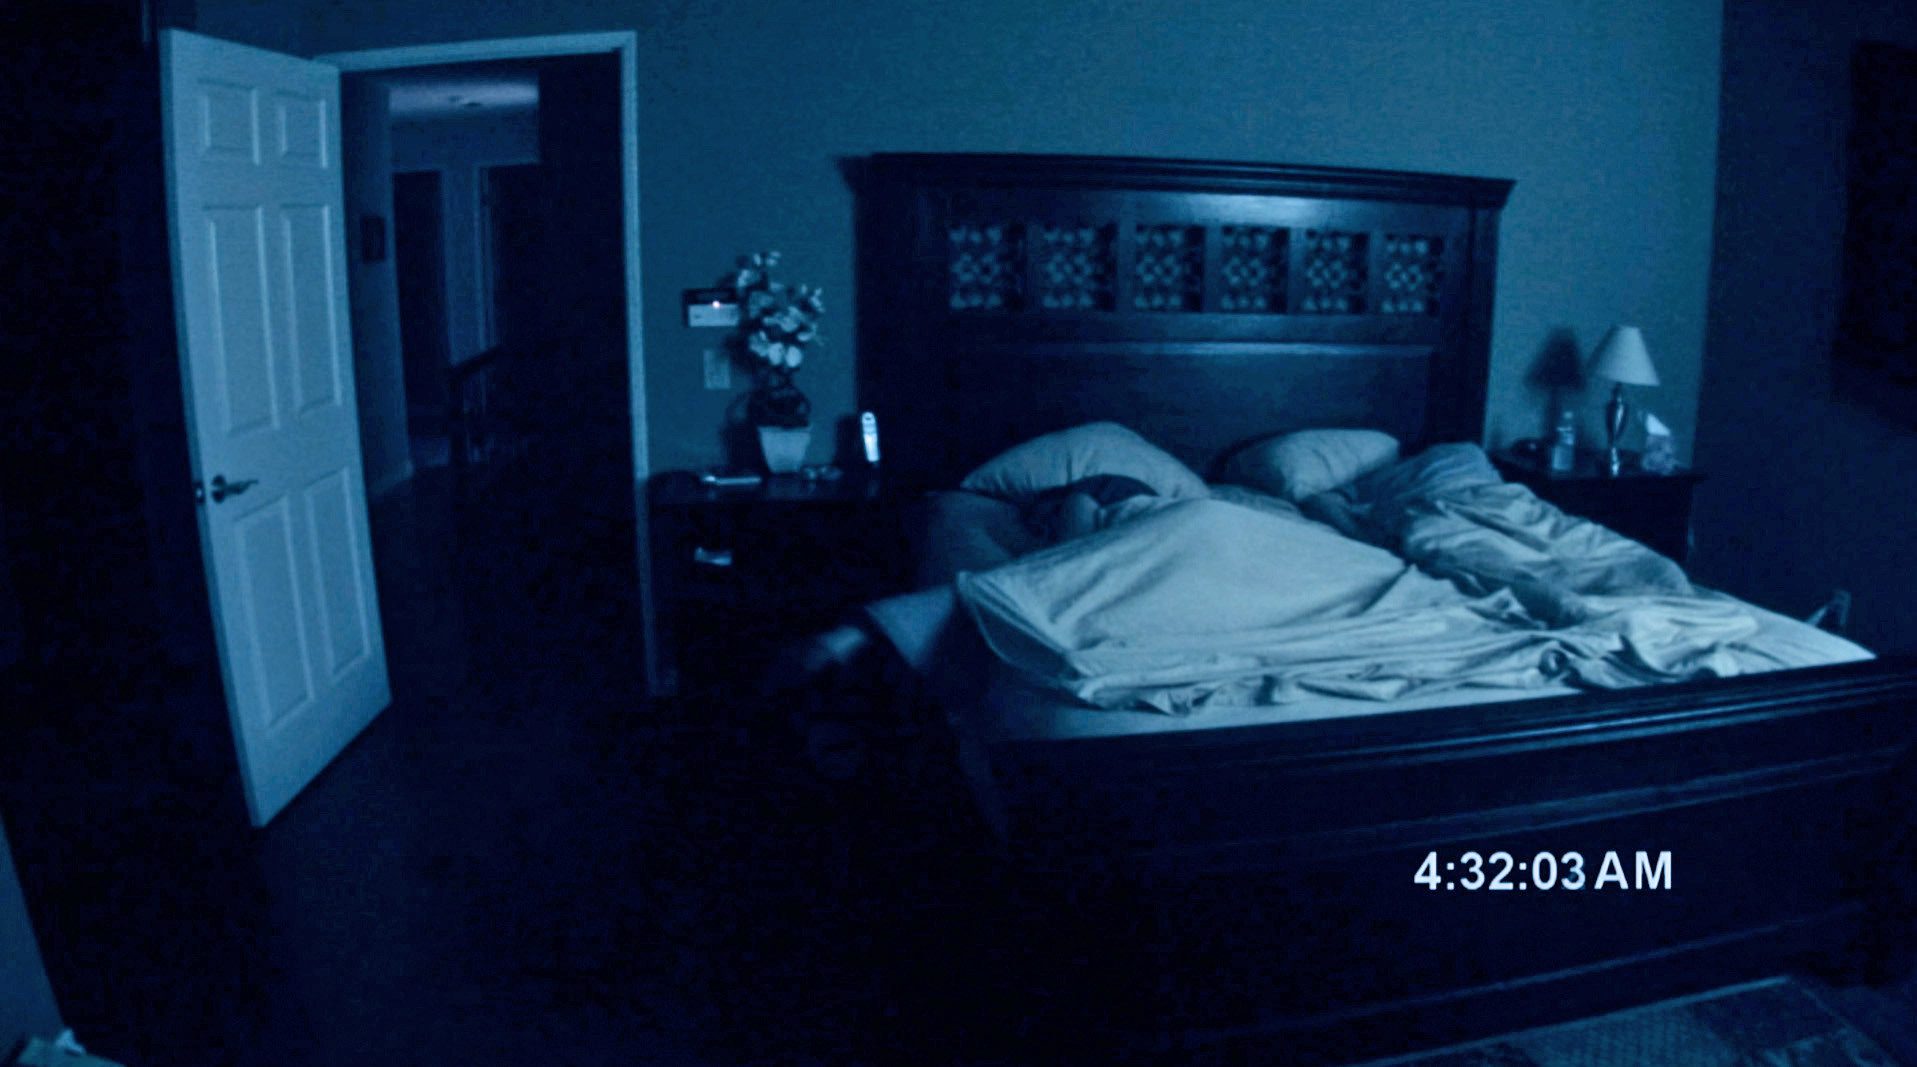 camera filming a couple sleeping